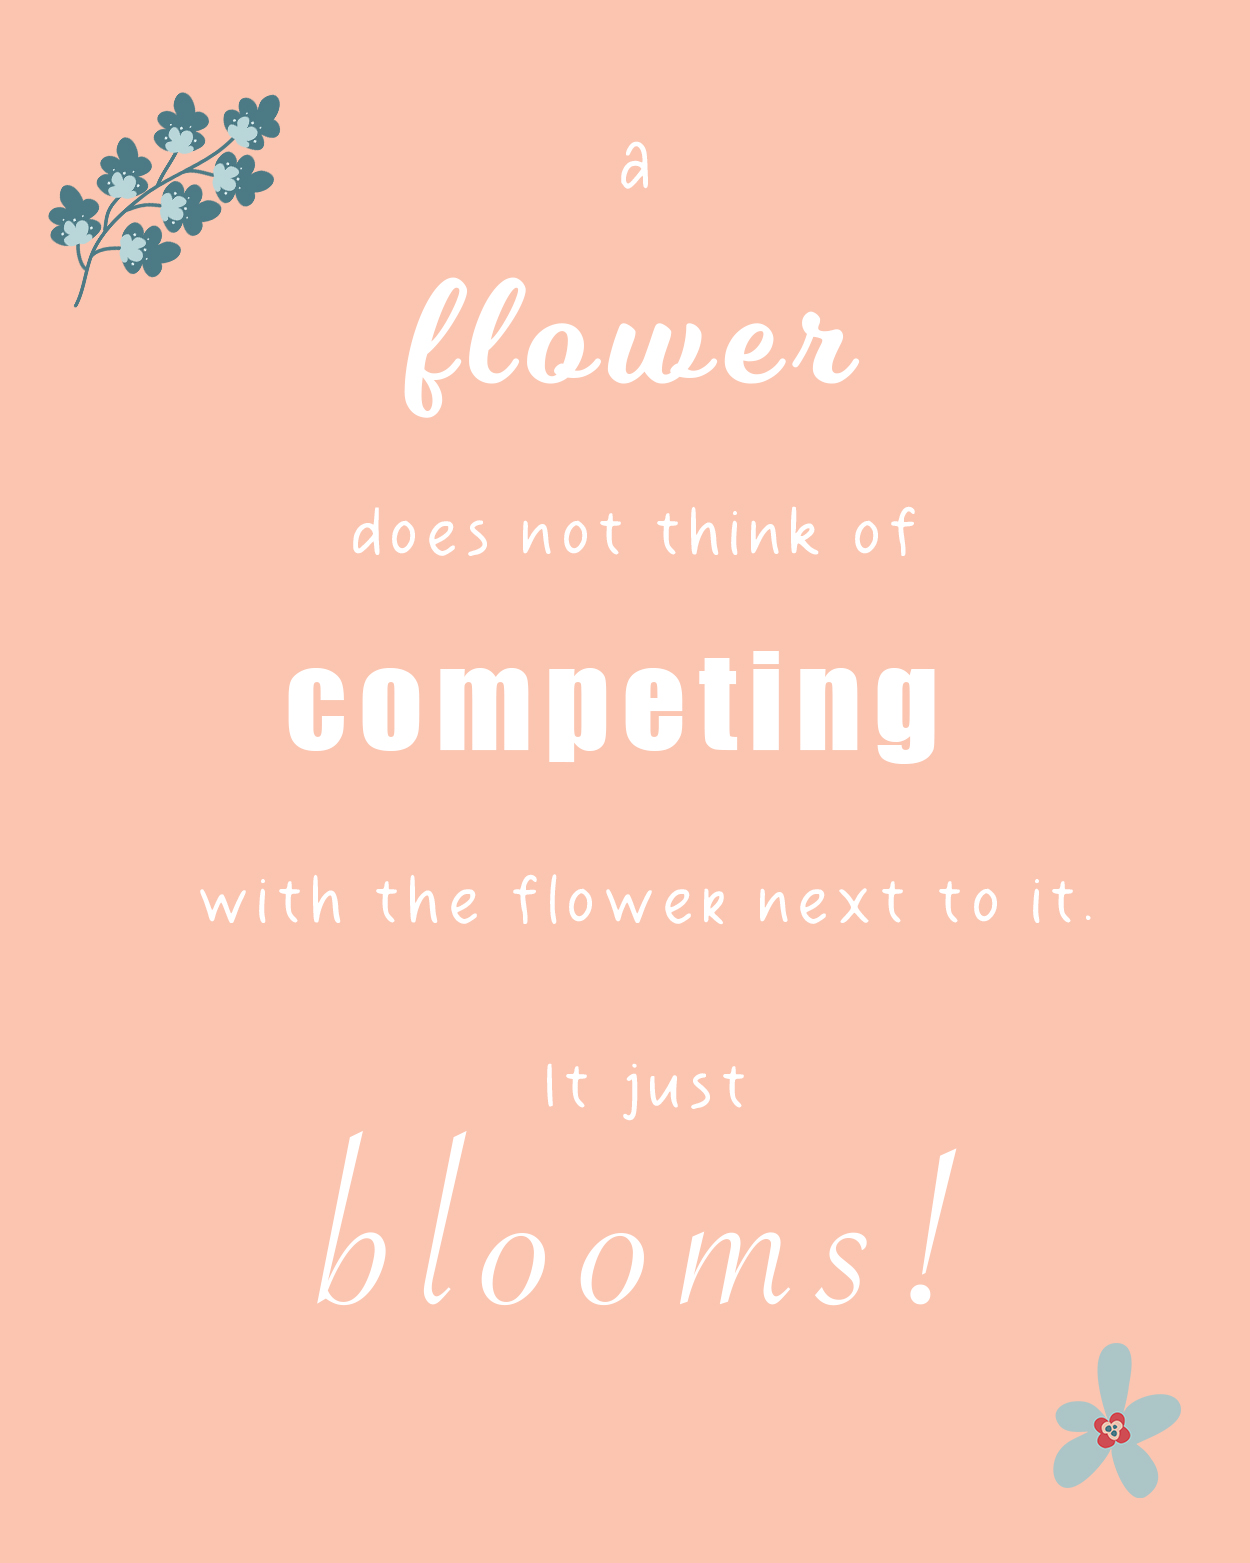 quote of a flower does not compare it self